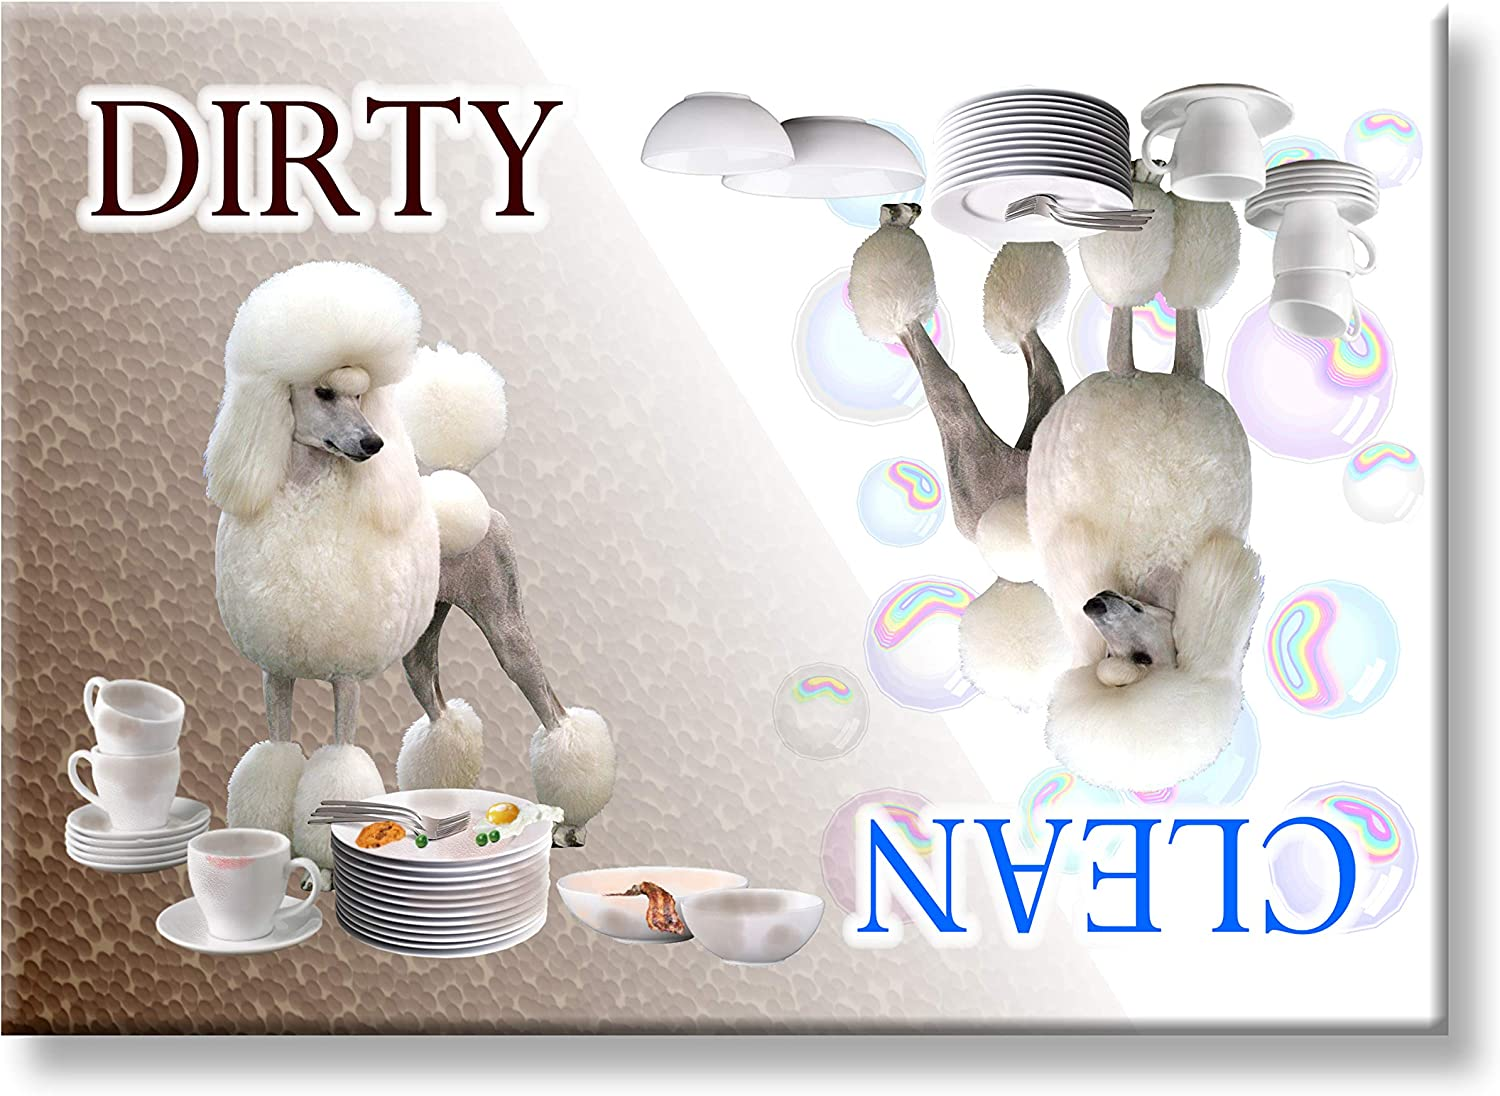 Poodle Clean Dirty Dishwasher Magnet No 1 White